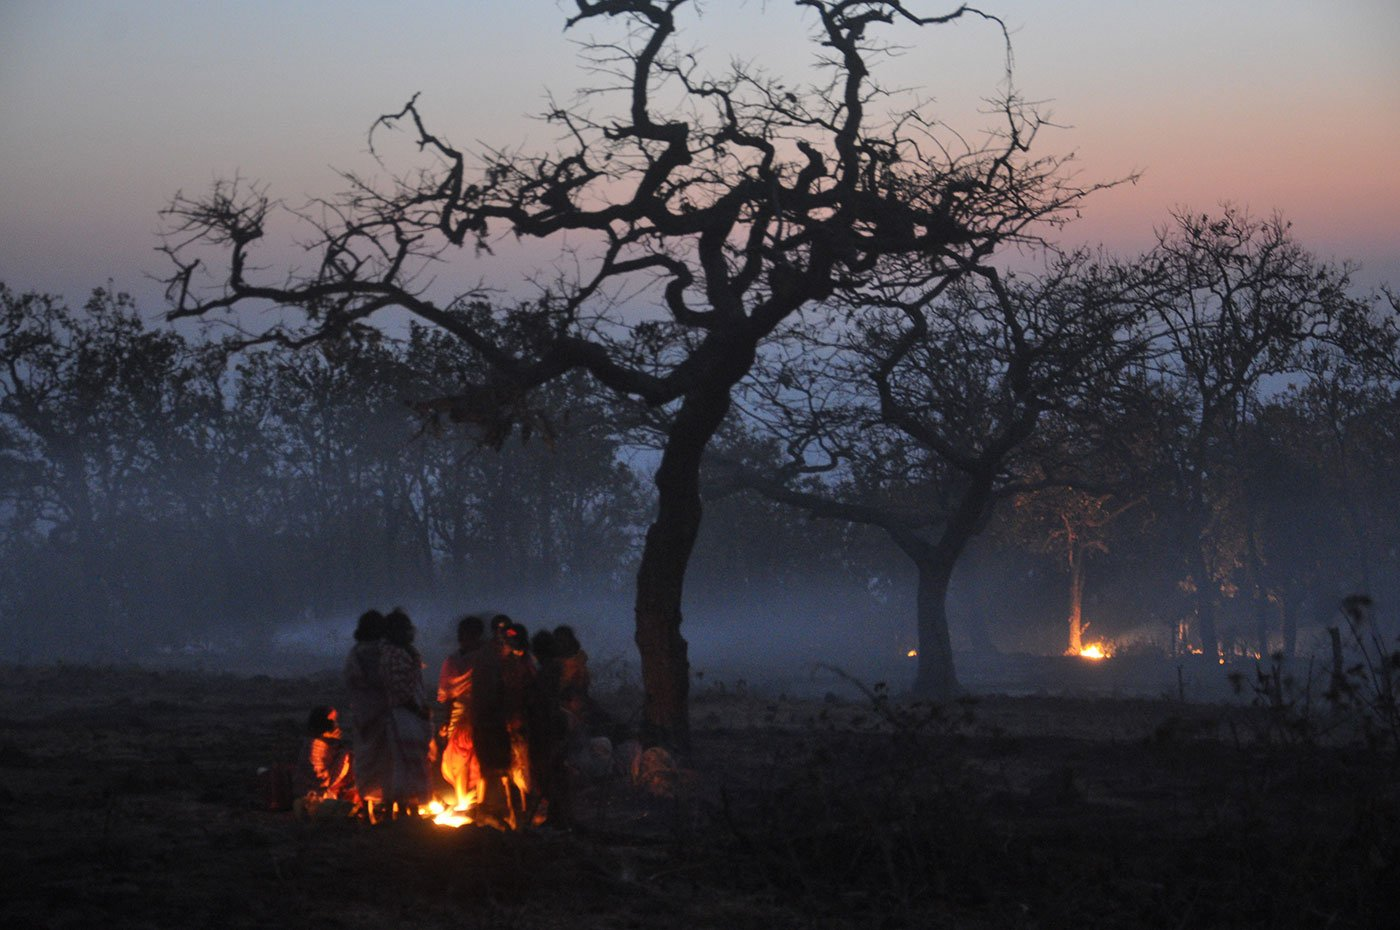 Tribals huddled next to a campfire in the evening